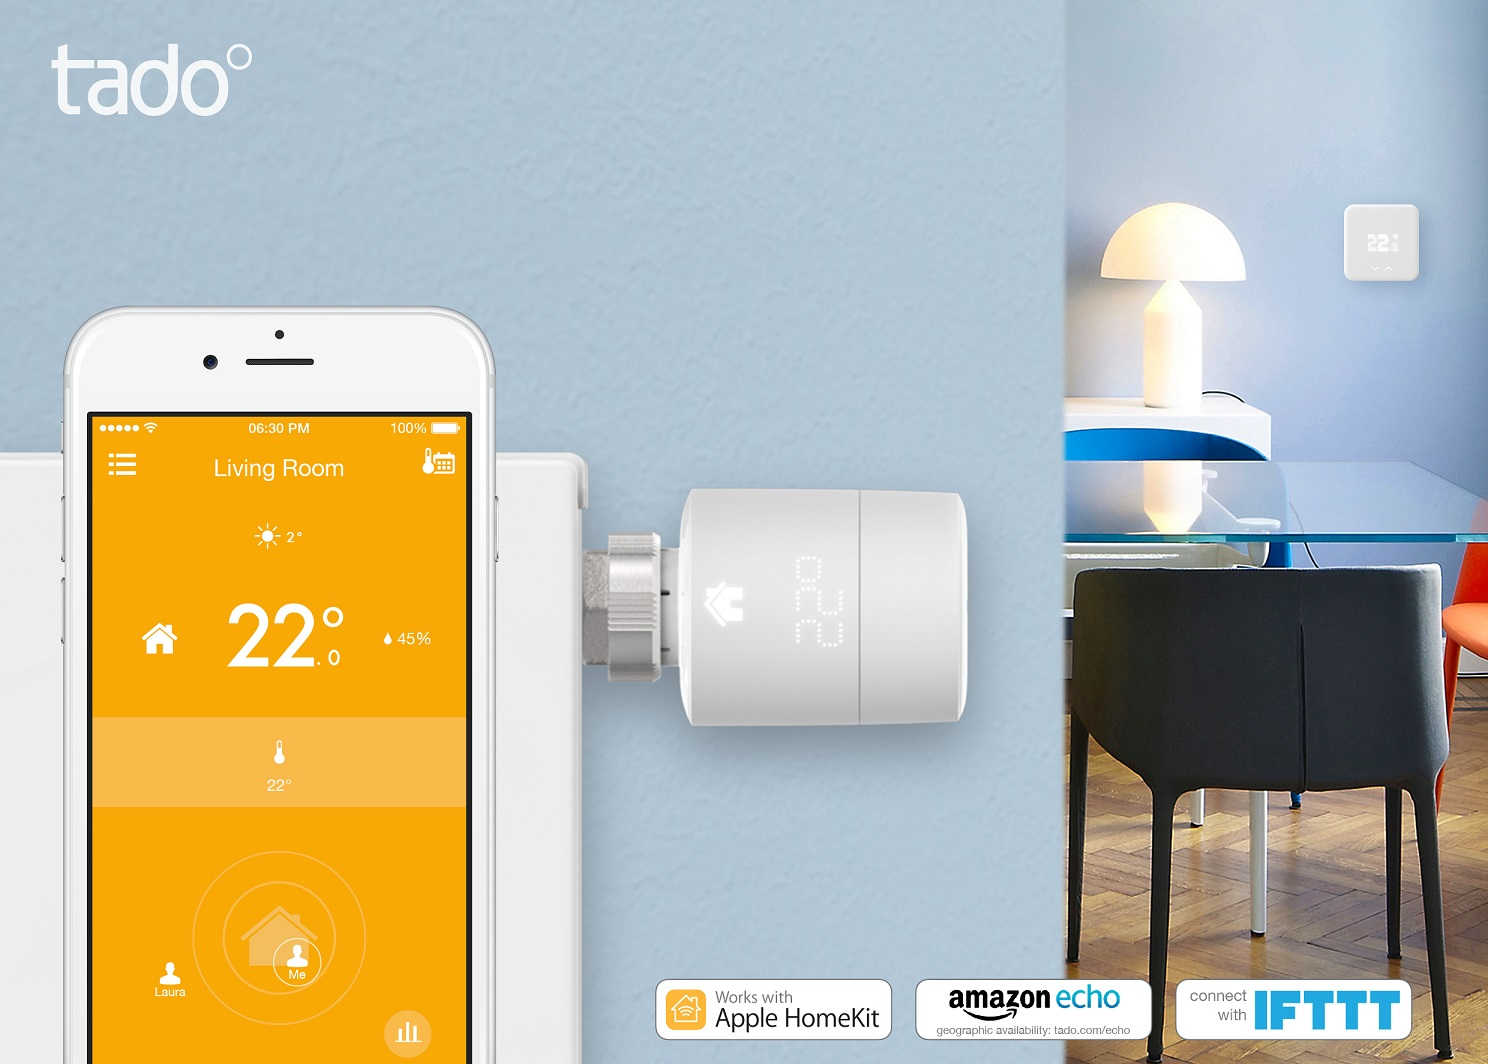 Tado v3 Smart Thermostat